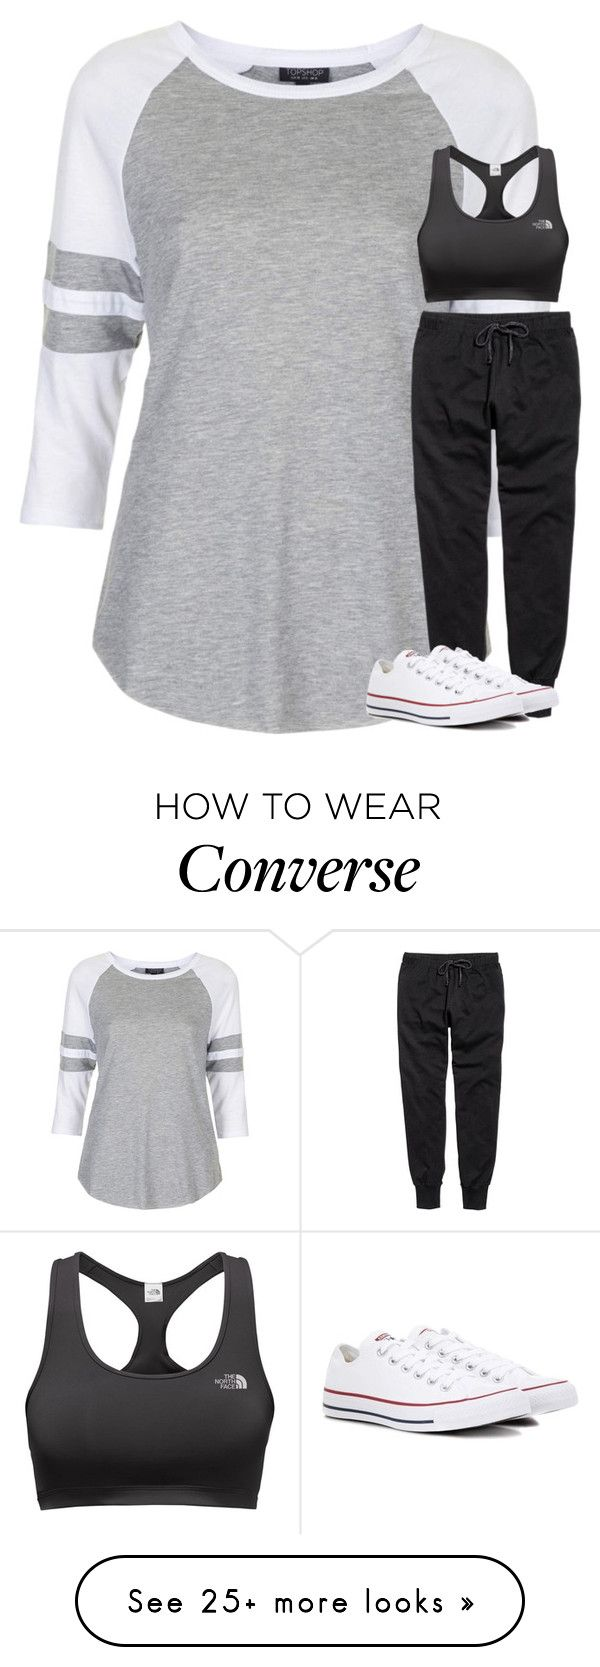 """Untitled #3256"" by laurenatria11 on Polyvore featuring Topshop, The North Face and Converse"